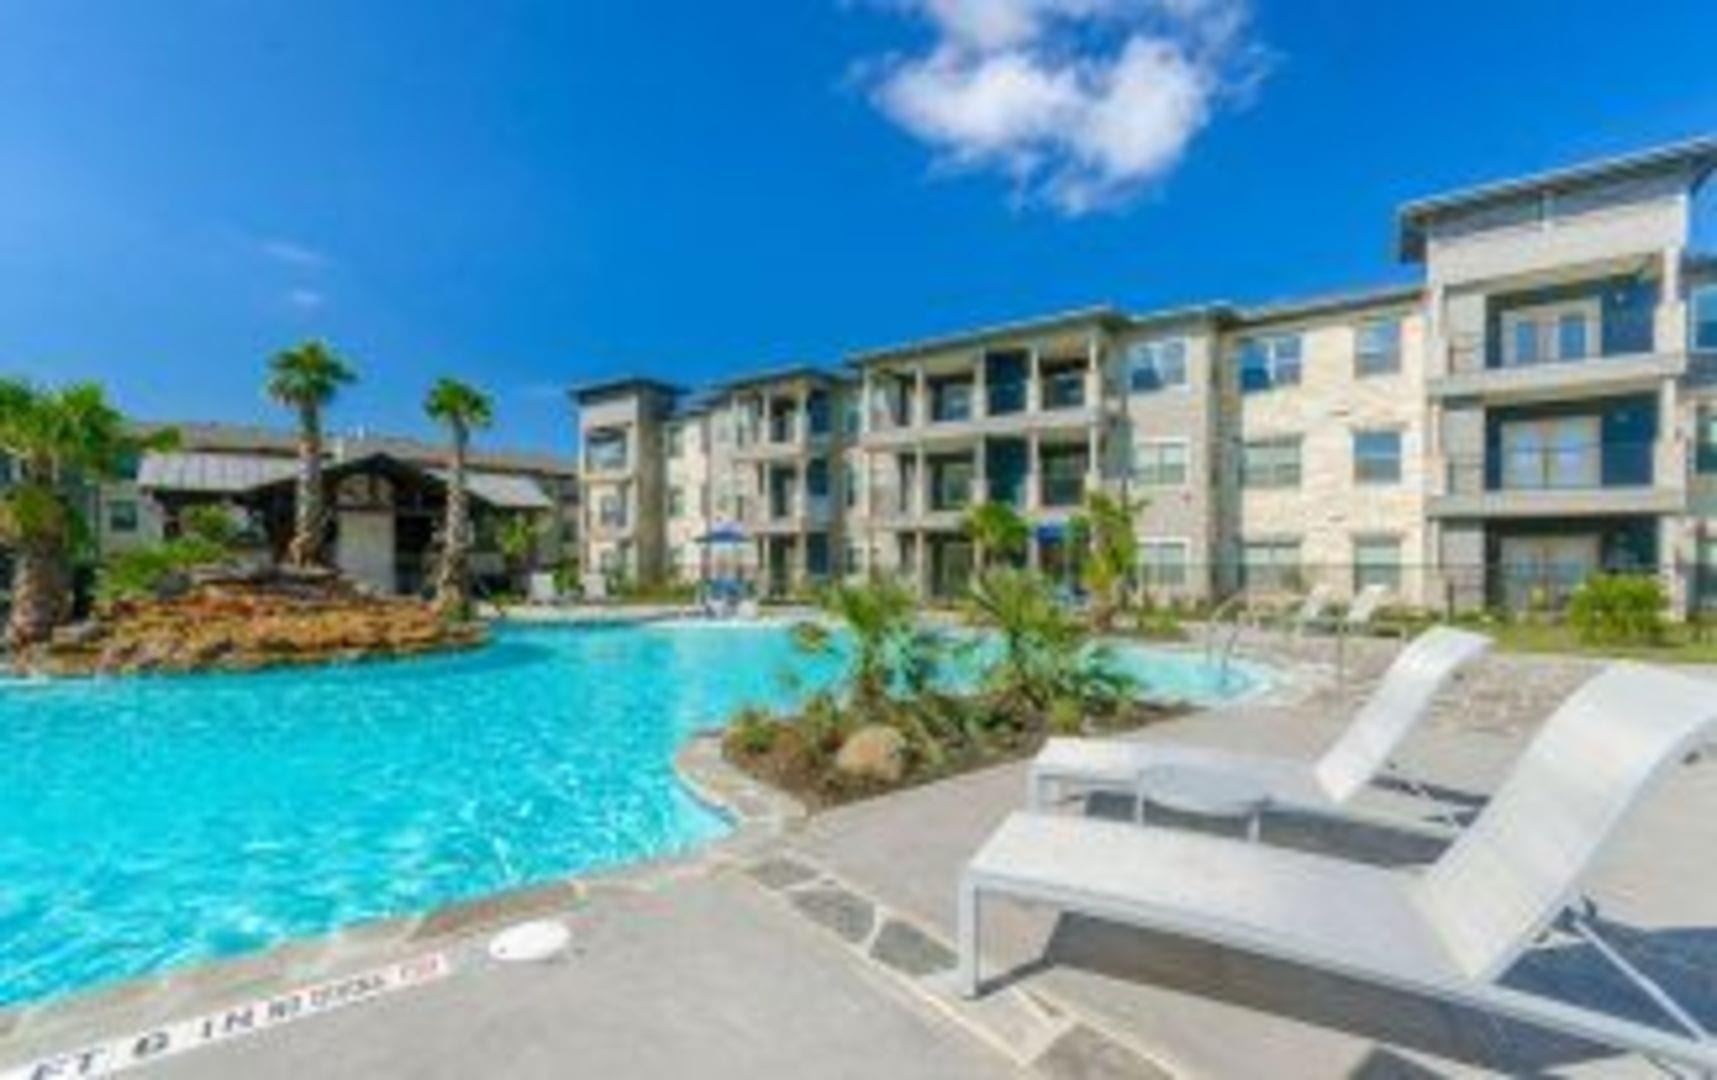 Apartments for Rent in San Antonio, TX. | Legacy Flats - Home